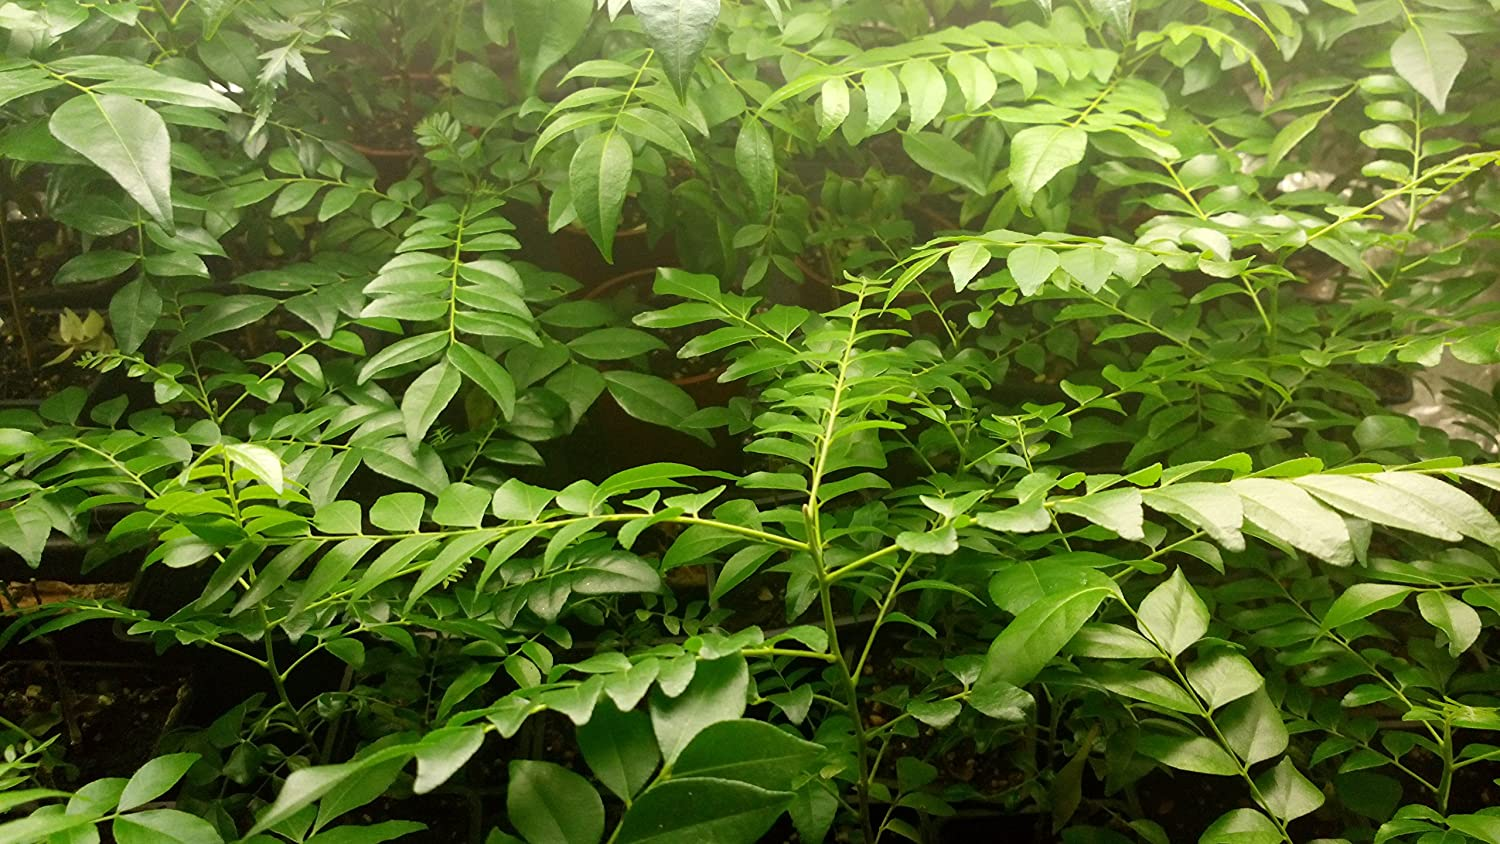 WO/_ 100PCS CURRY LEAF TREE SEEDS PETTED CULINARY HERB PLANT OUTDOOR YARD DECOR N